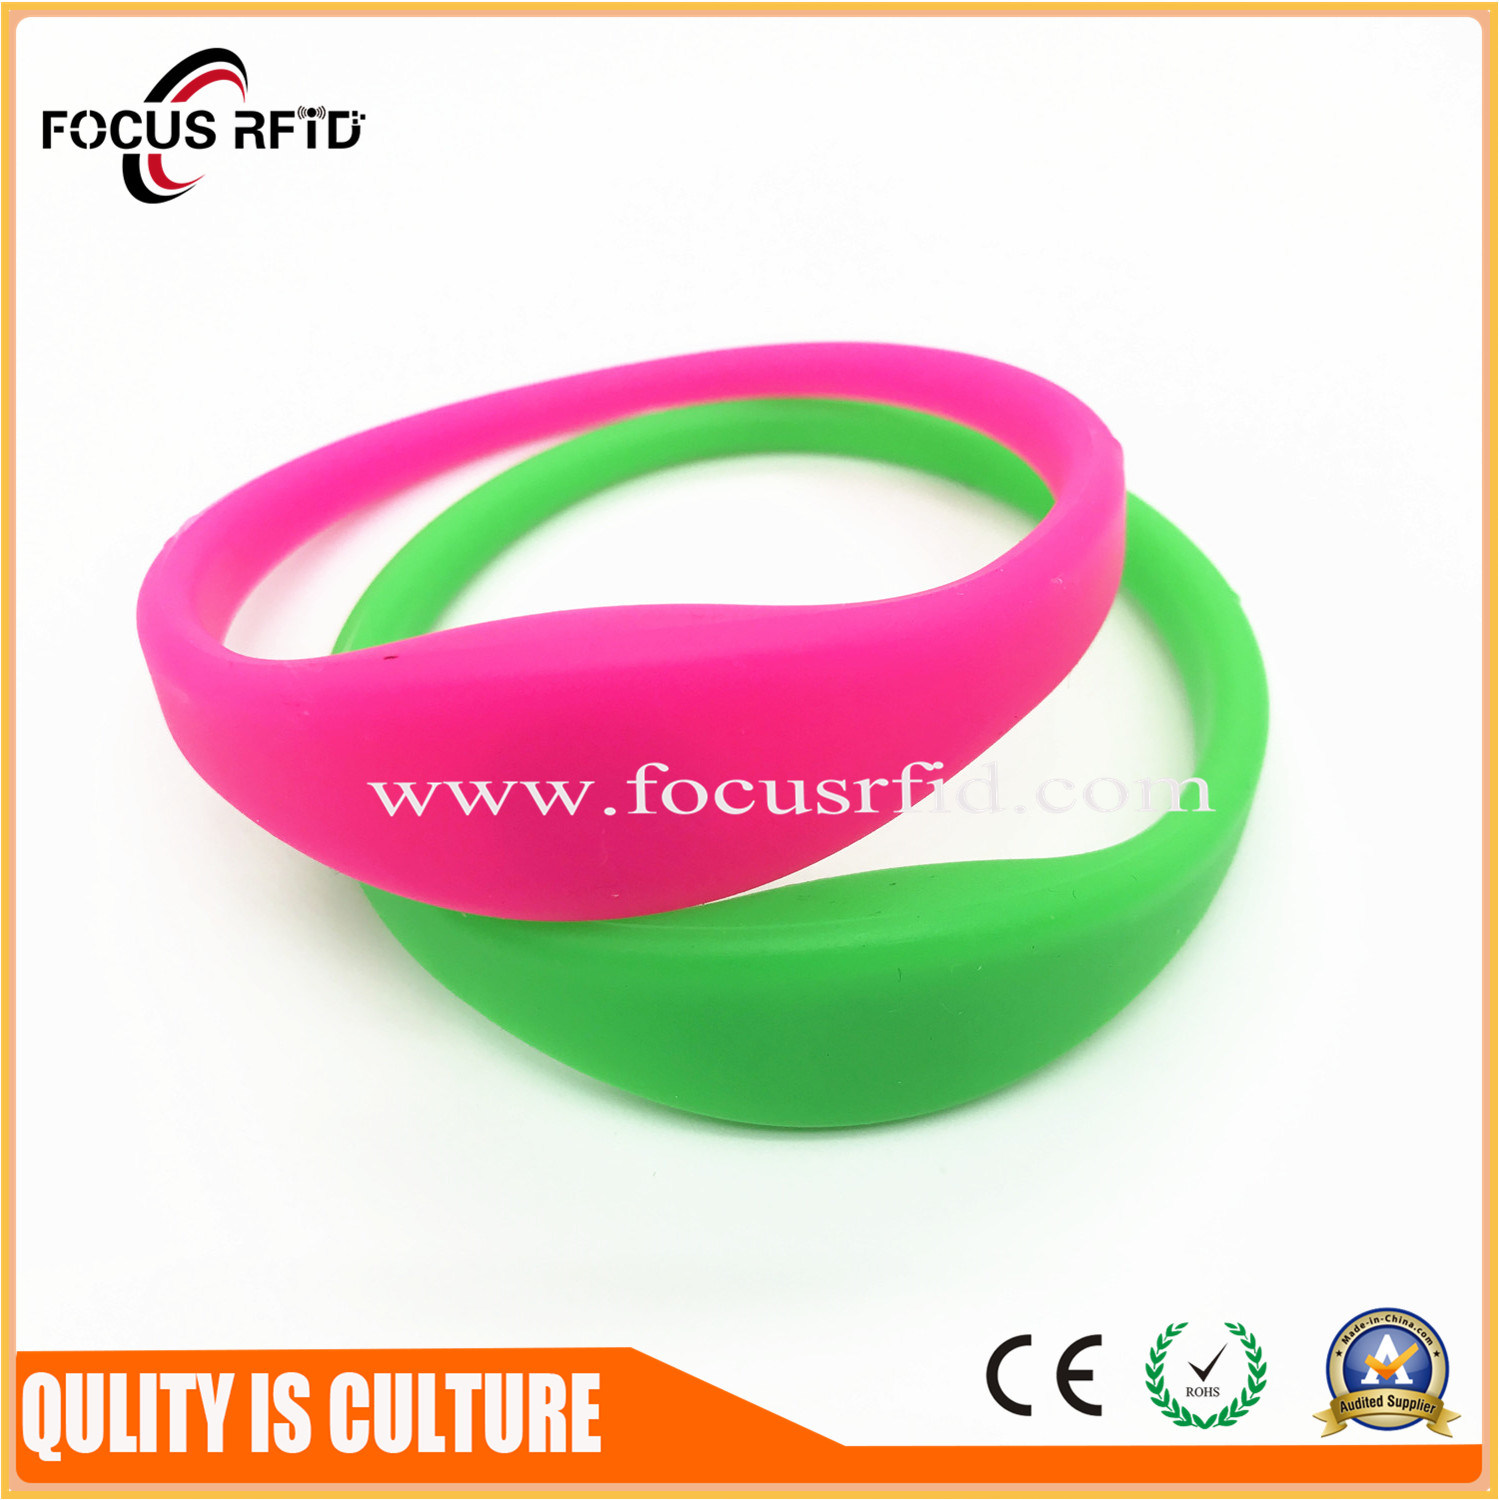 ddfejm alamy bracelet on hand photo his rfid stock